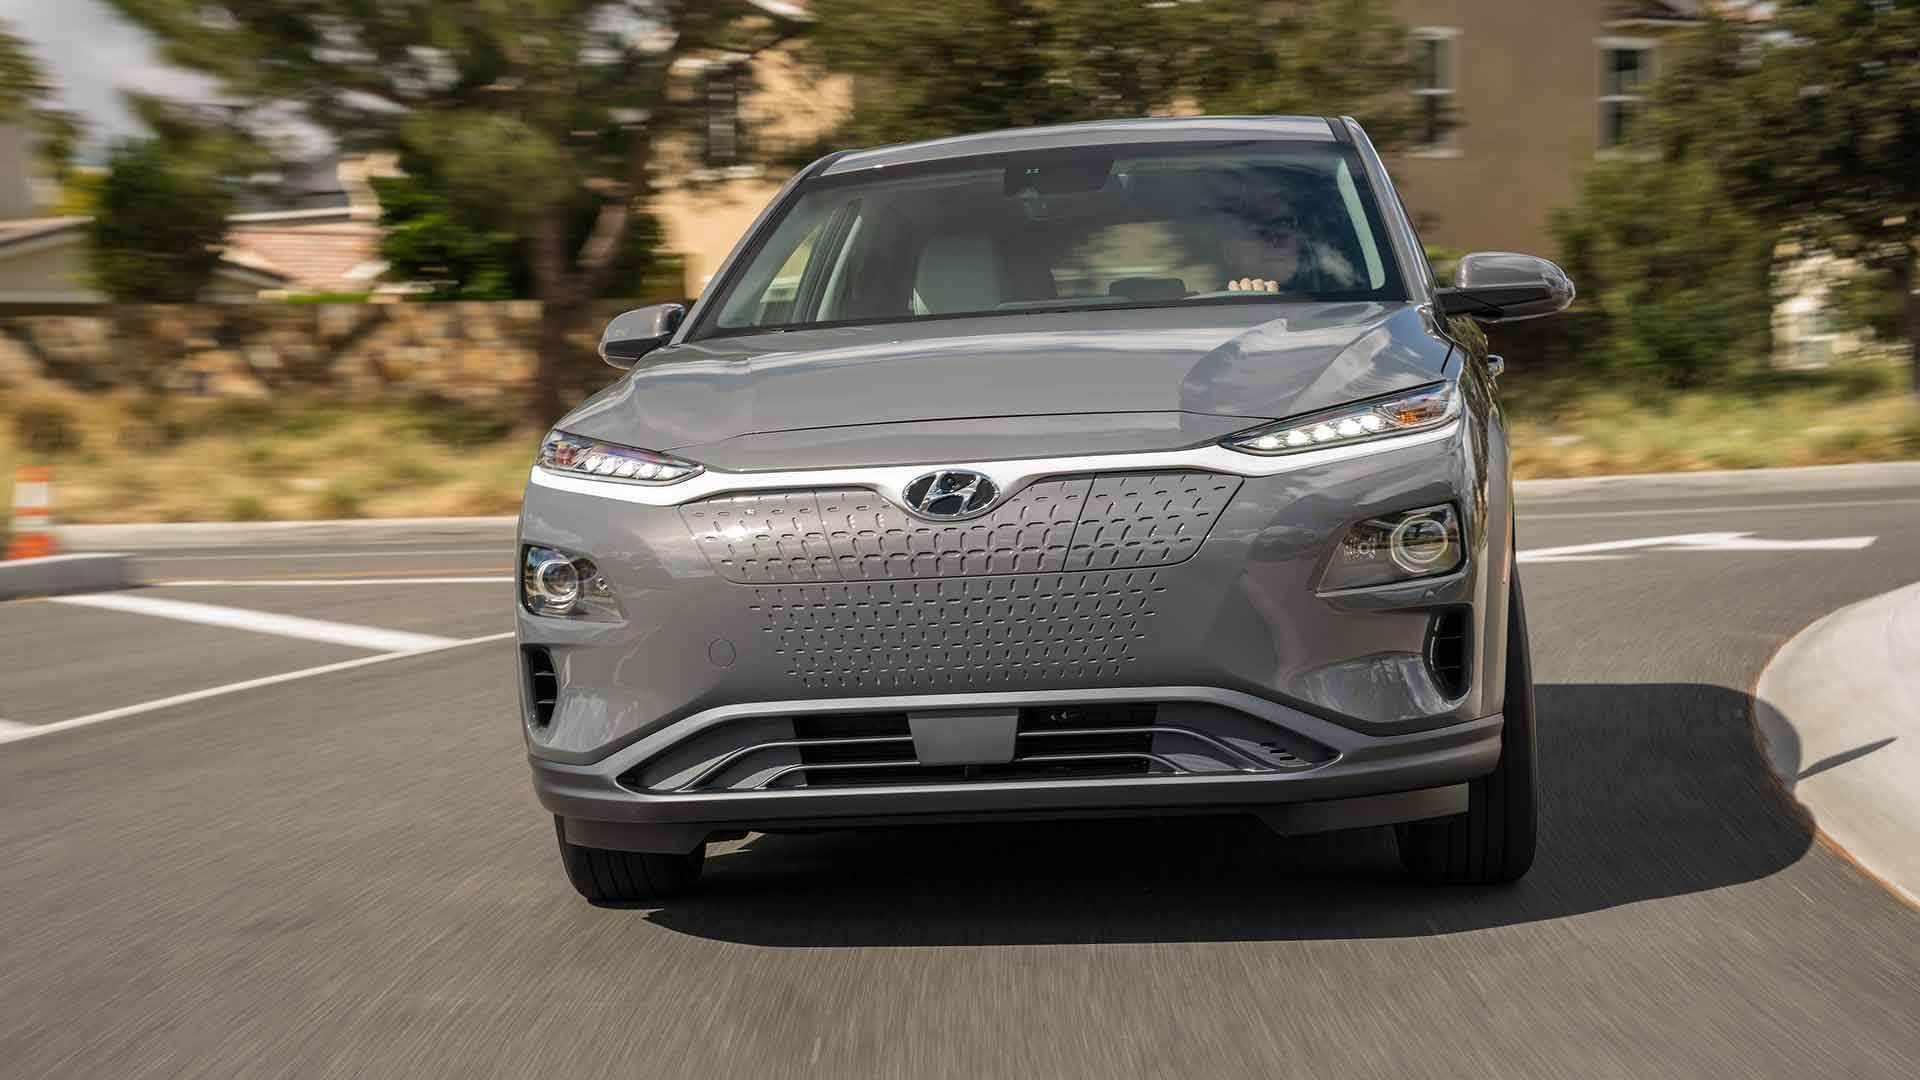 42 Best Review Hyundai Kona 2020 Review New Review by Hyundai Kona 2020 Review